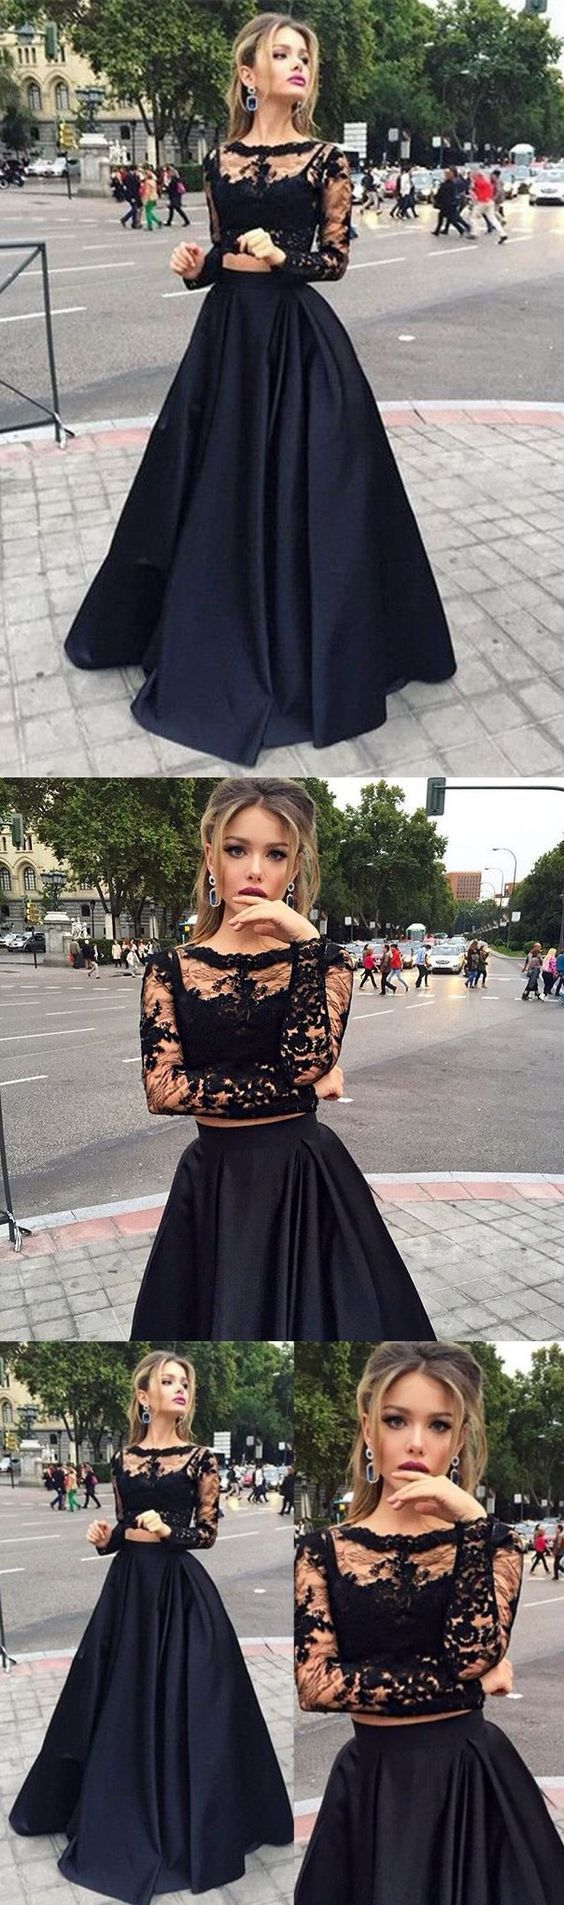 Black Prom Dress,Lace prom dress,2017 Prom dress,Long Sleeves prom dress,: